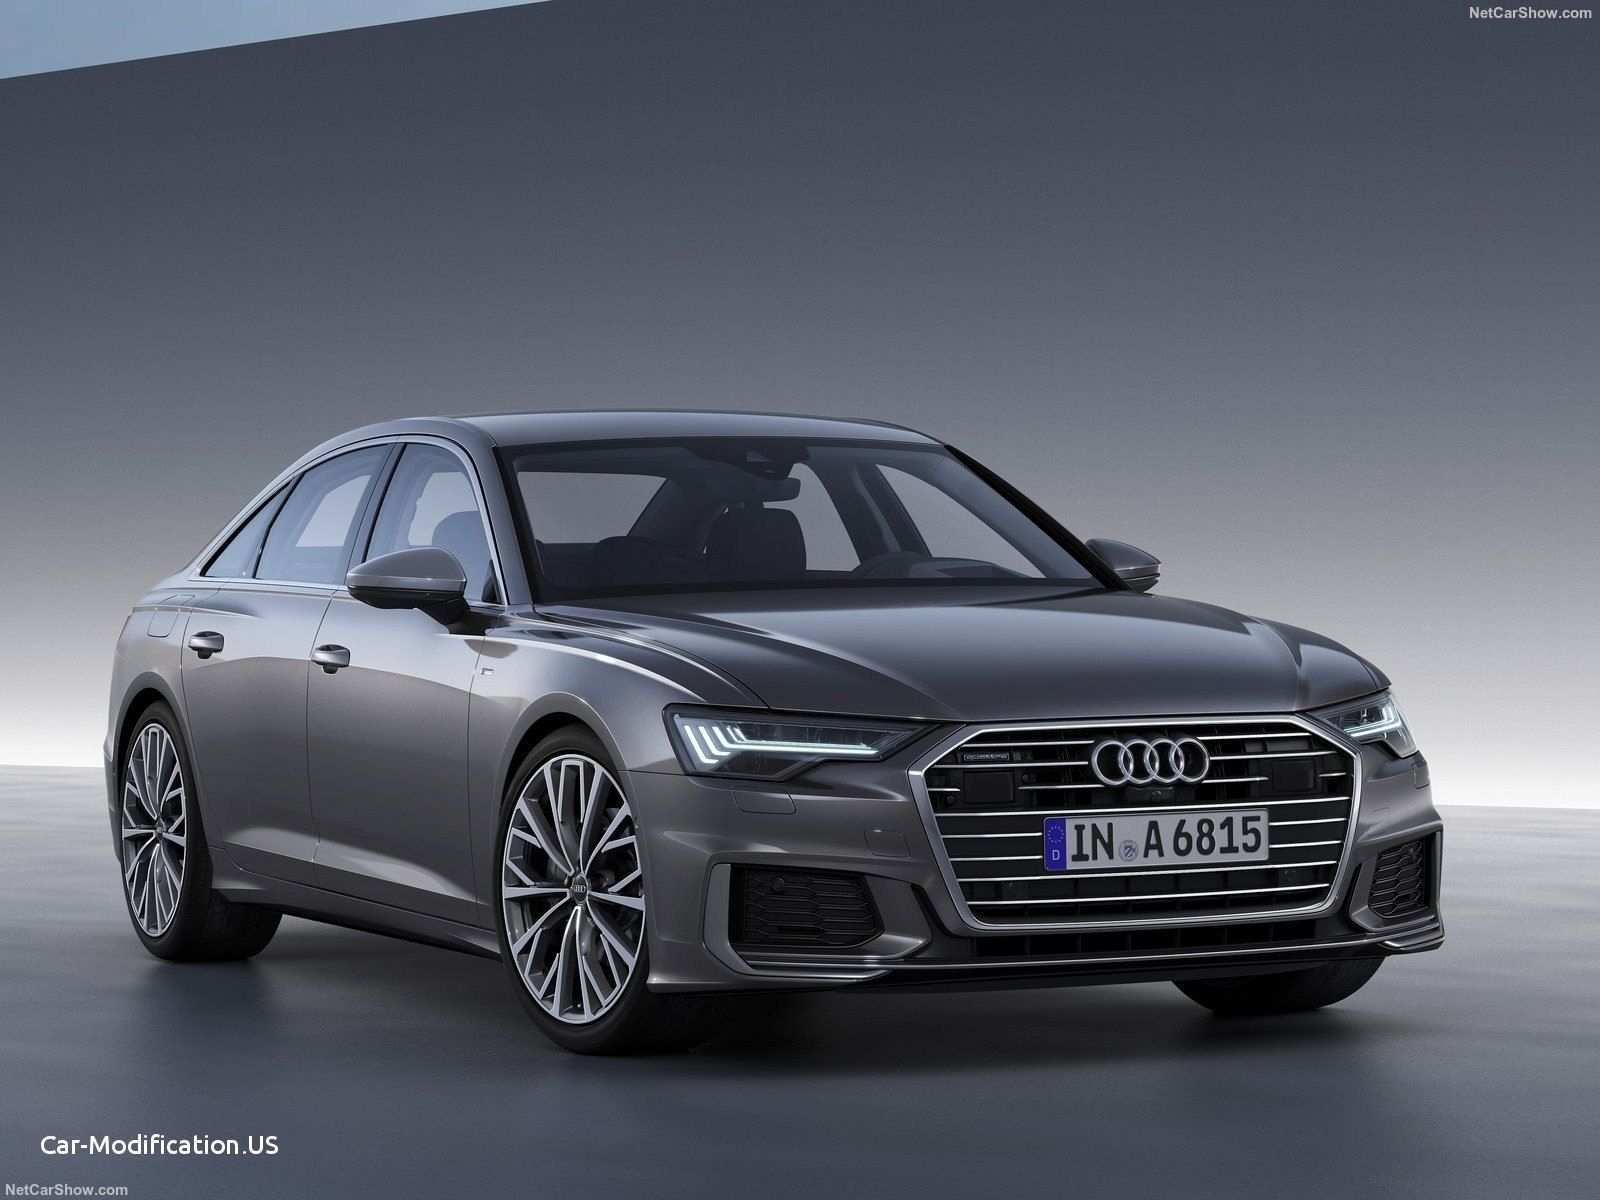 34 Concept of 2020 Audi A5s Images for 2020 Audi A5s